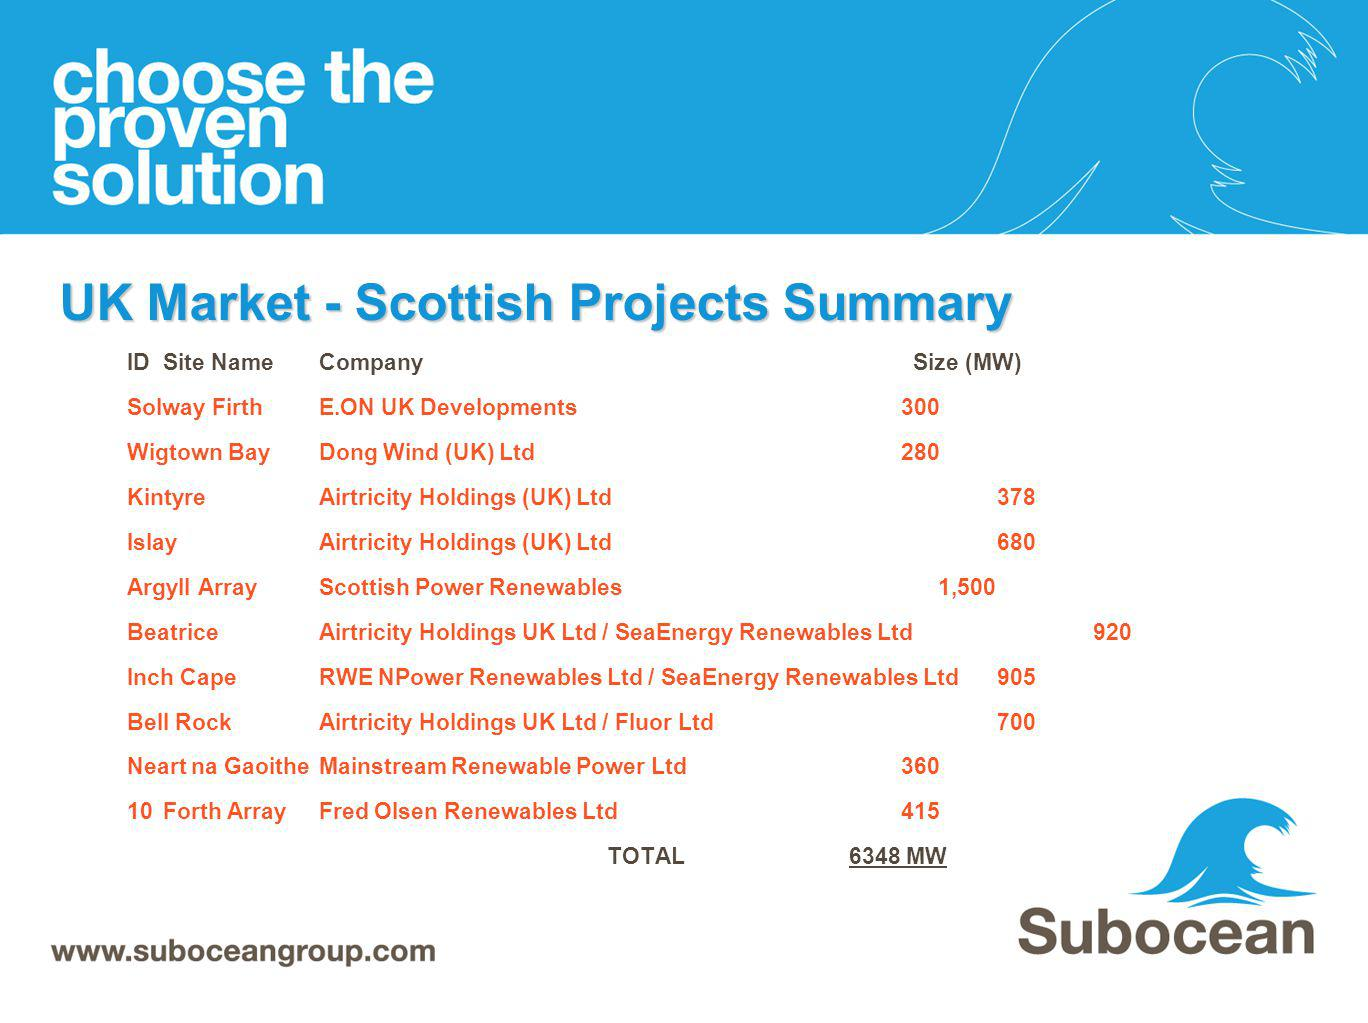 UK Market - Scottish Projects Summary